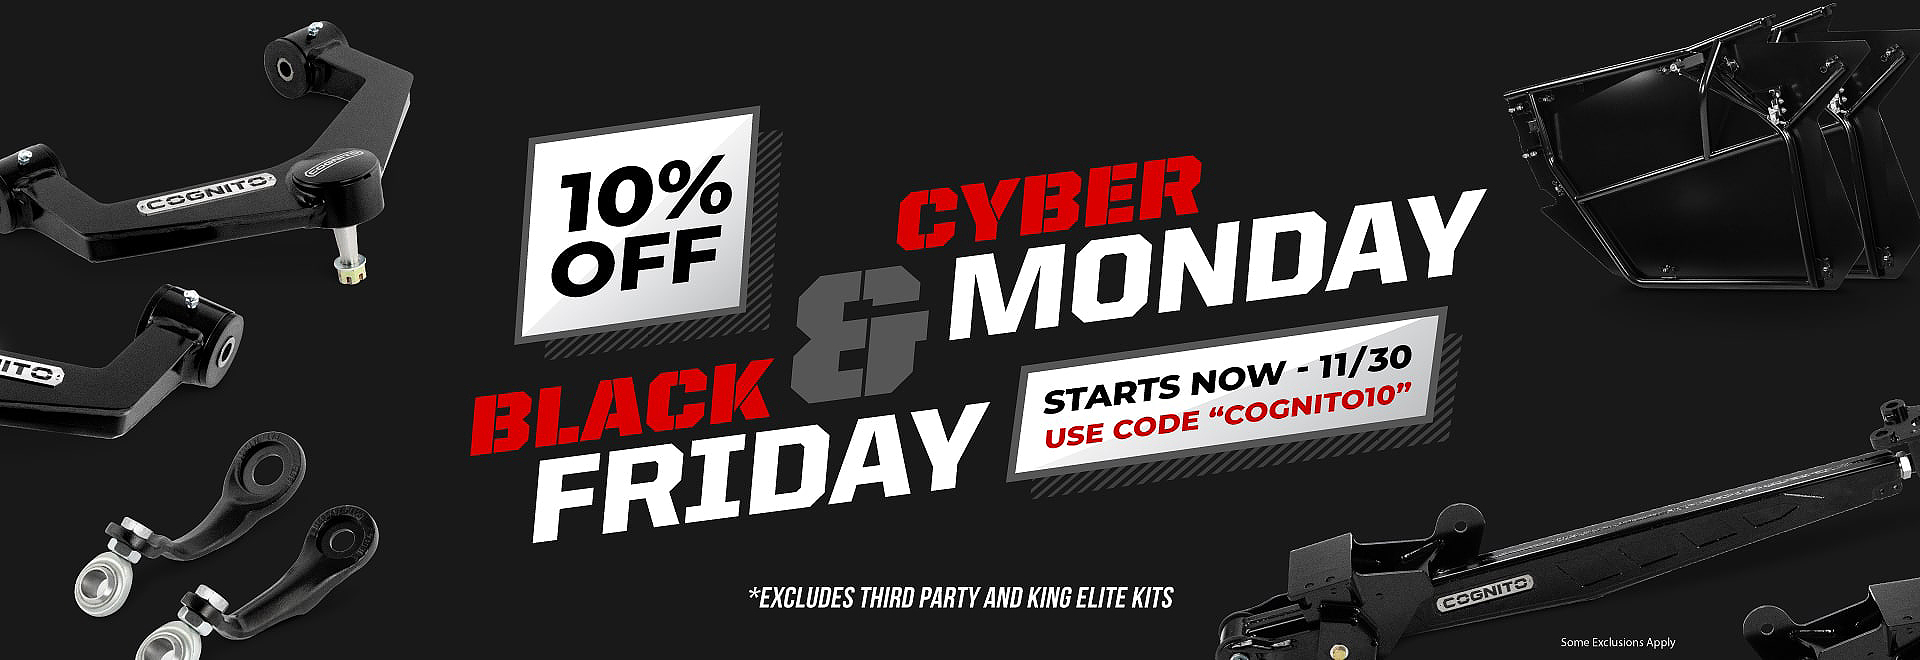 Cognito Black Friday and Cyber Monday Sale